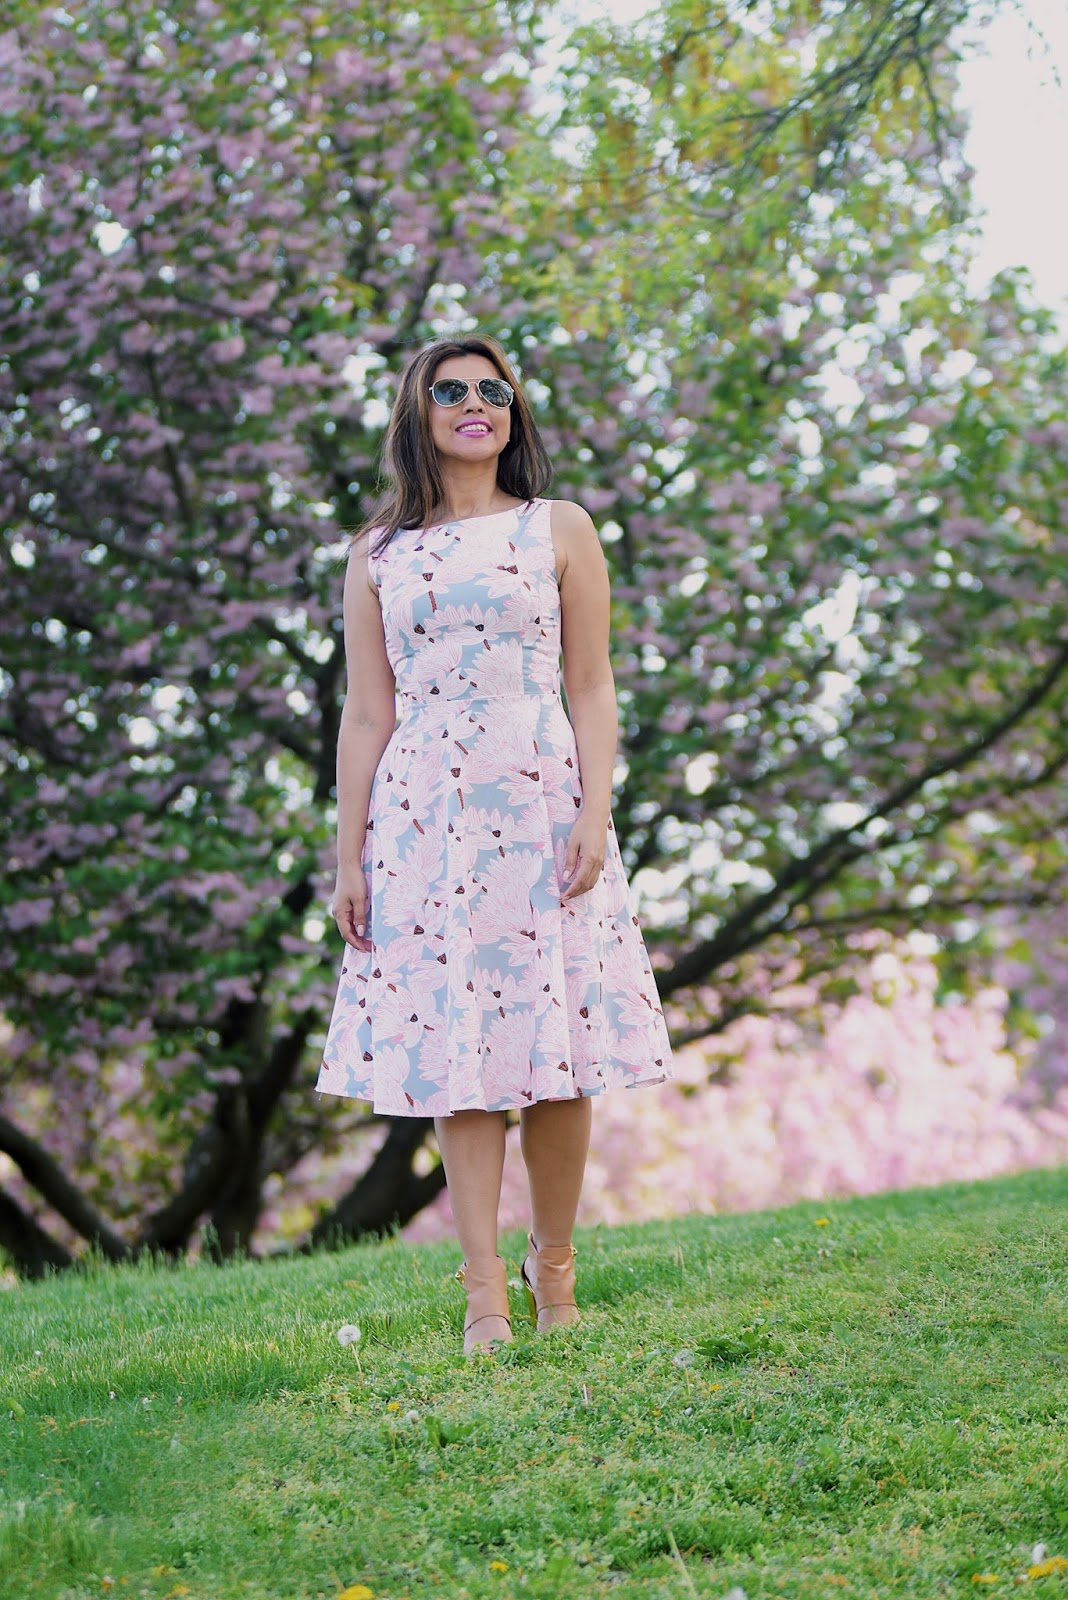 Cherry Blossom Dress-mariestilo-lightinthebox-fashionblogger-lookoftheday-primavera-spring style-armandhugon-celebrando la primavera